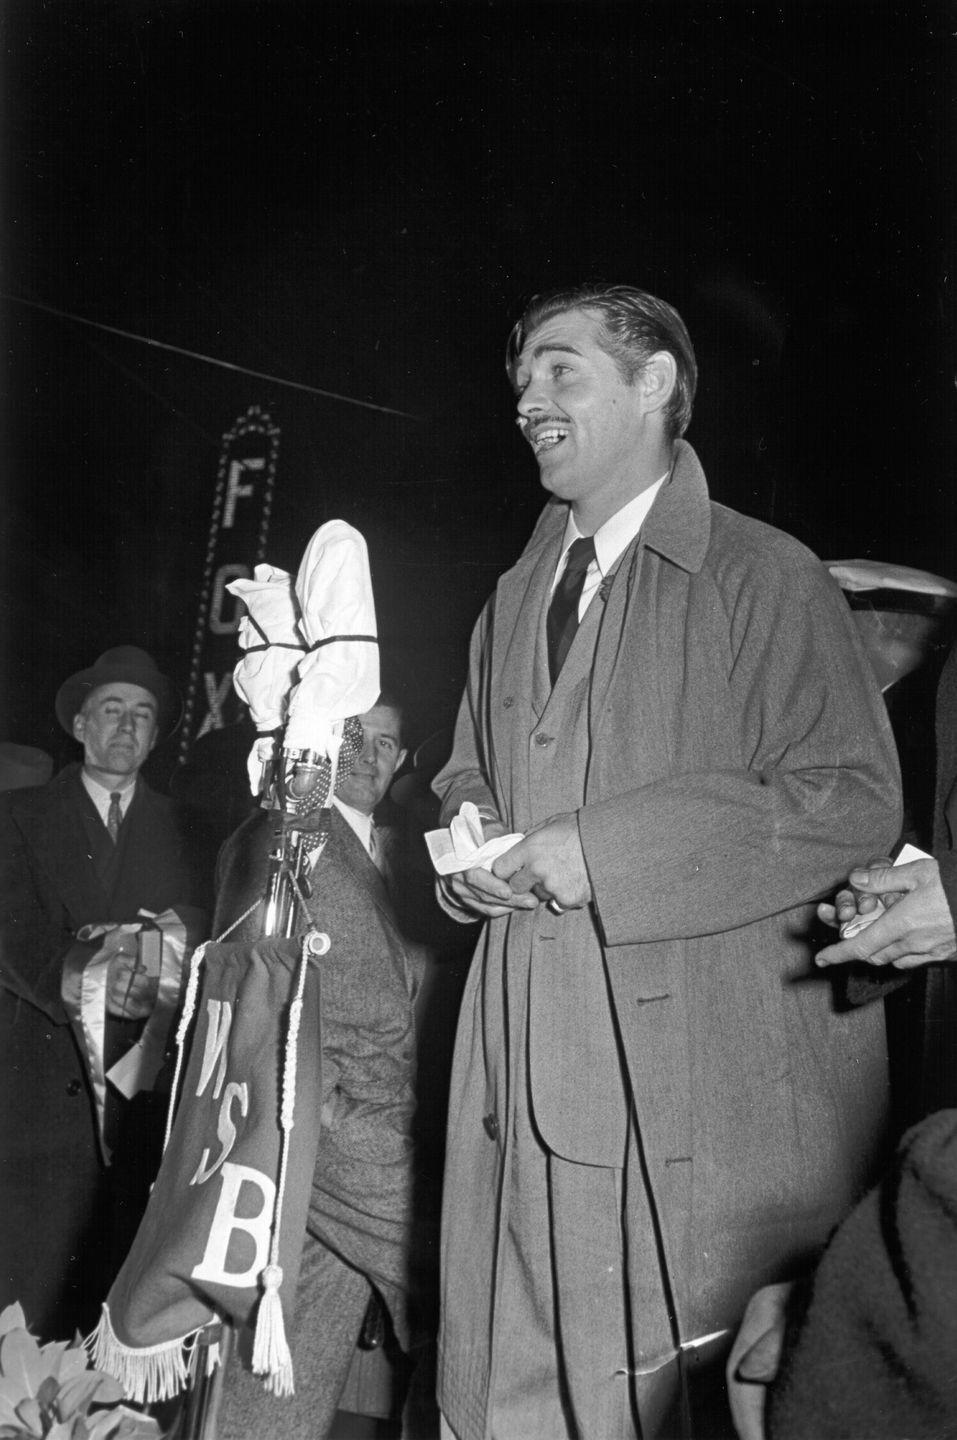 "<p><em>Gone With the Wind</em> star Clark Gable addresses fans at the 1939 Atlanta premiere of <em>Gone With the Wind</em>, which went on to gross over $400 million ($3.44 billion today)–making it one of the highest-grossing movies in history.</p><p><strong>Related: <a href=""https://www.housebeautiful.com/lifestyle/g4573/gone-with-the-wind-facts/"" rel=""nofollow noopener"" target=""_blank"" data-ylk=""slk:25 Things You Didn't Know About &quot;Gone with the Wind&quot;"" class=""link rapid-noclick-resp"">25 Things You Didn't Know About ""Gone with the Wind""</a></strong></p>"